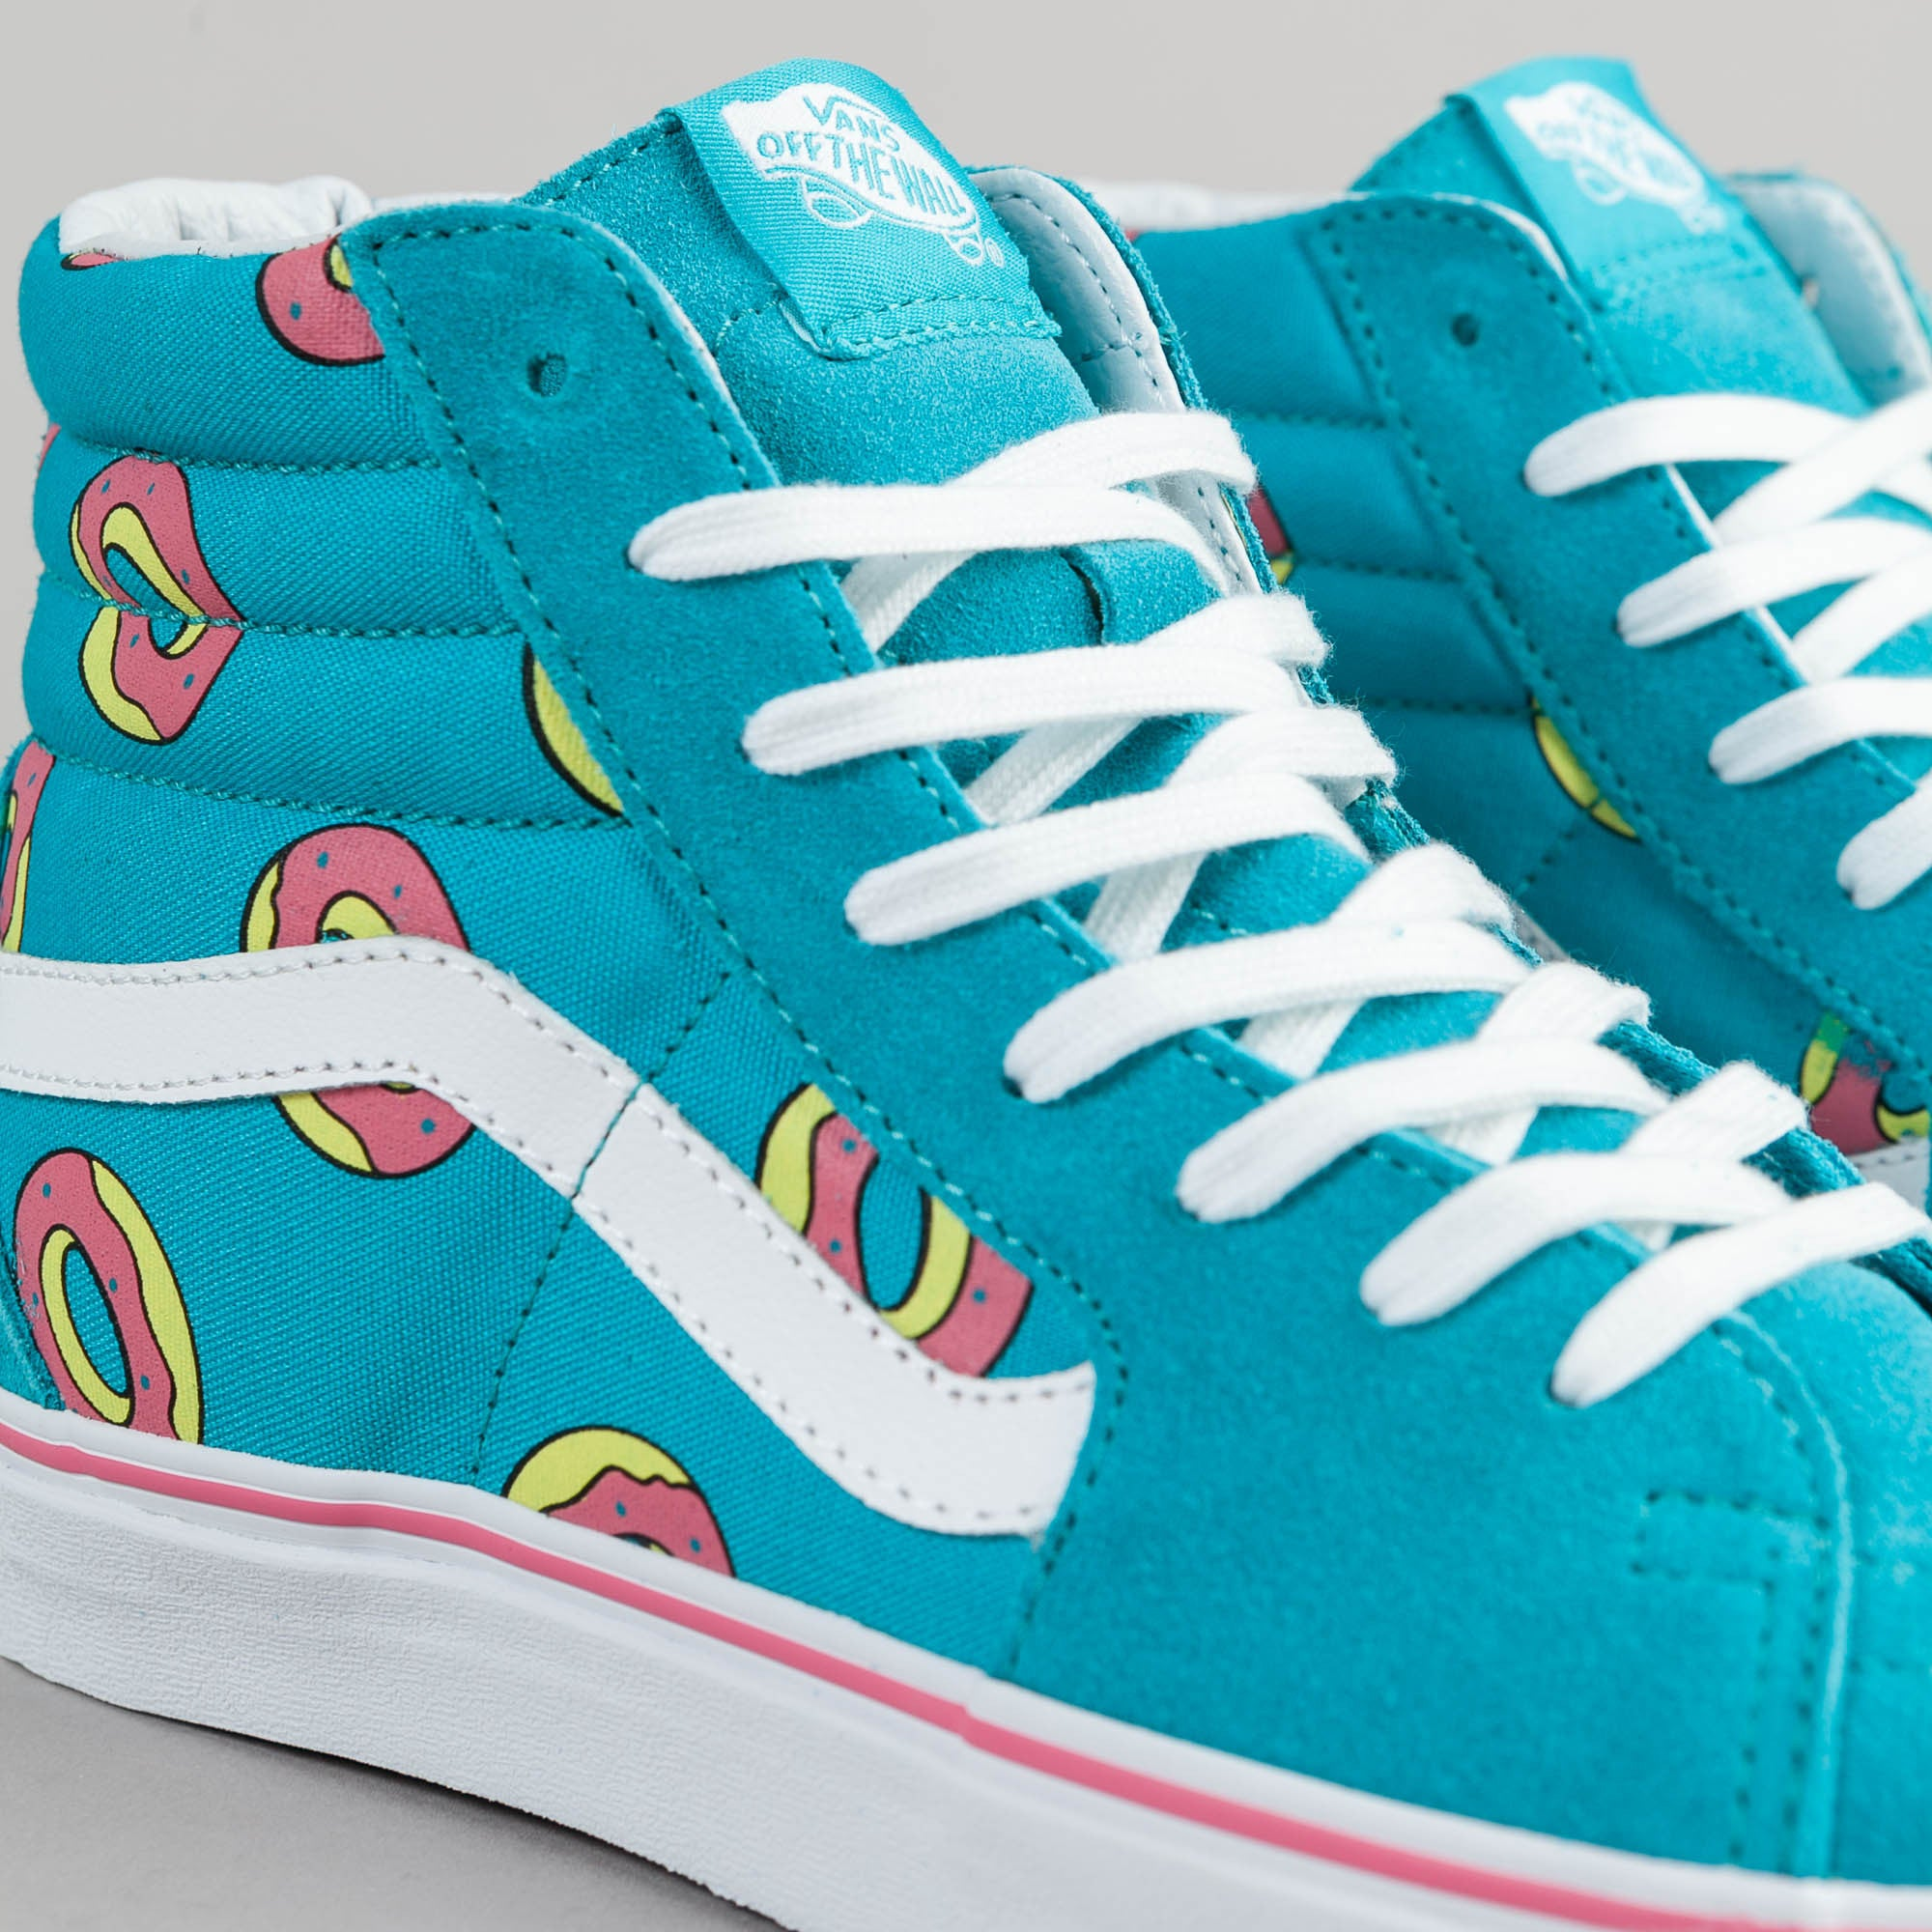 8f6cc55b7f7 ... Odd Future x Vans Sk8-Hi OF Donut Shoes - Scuba Blue ...